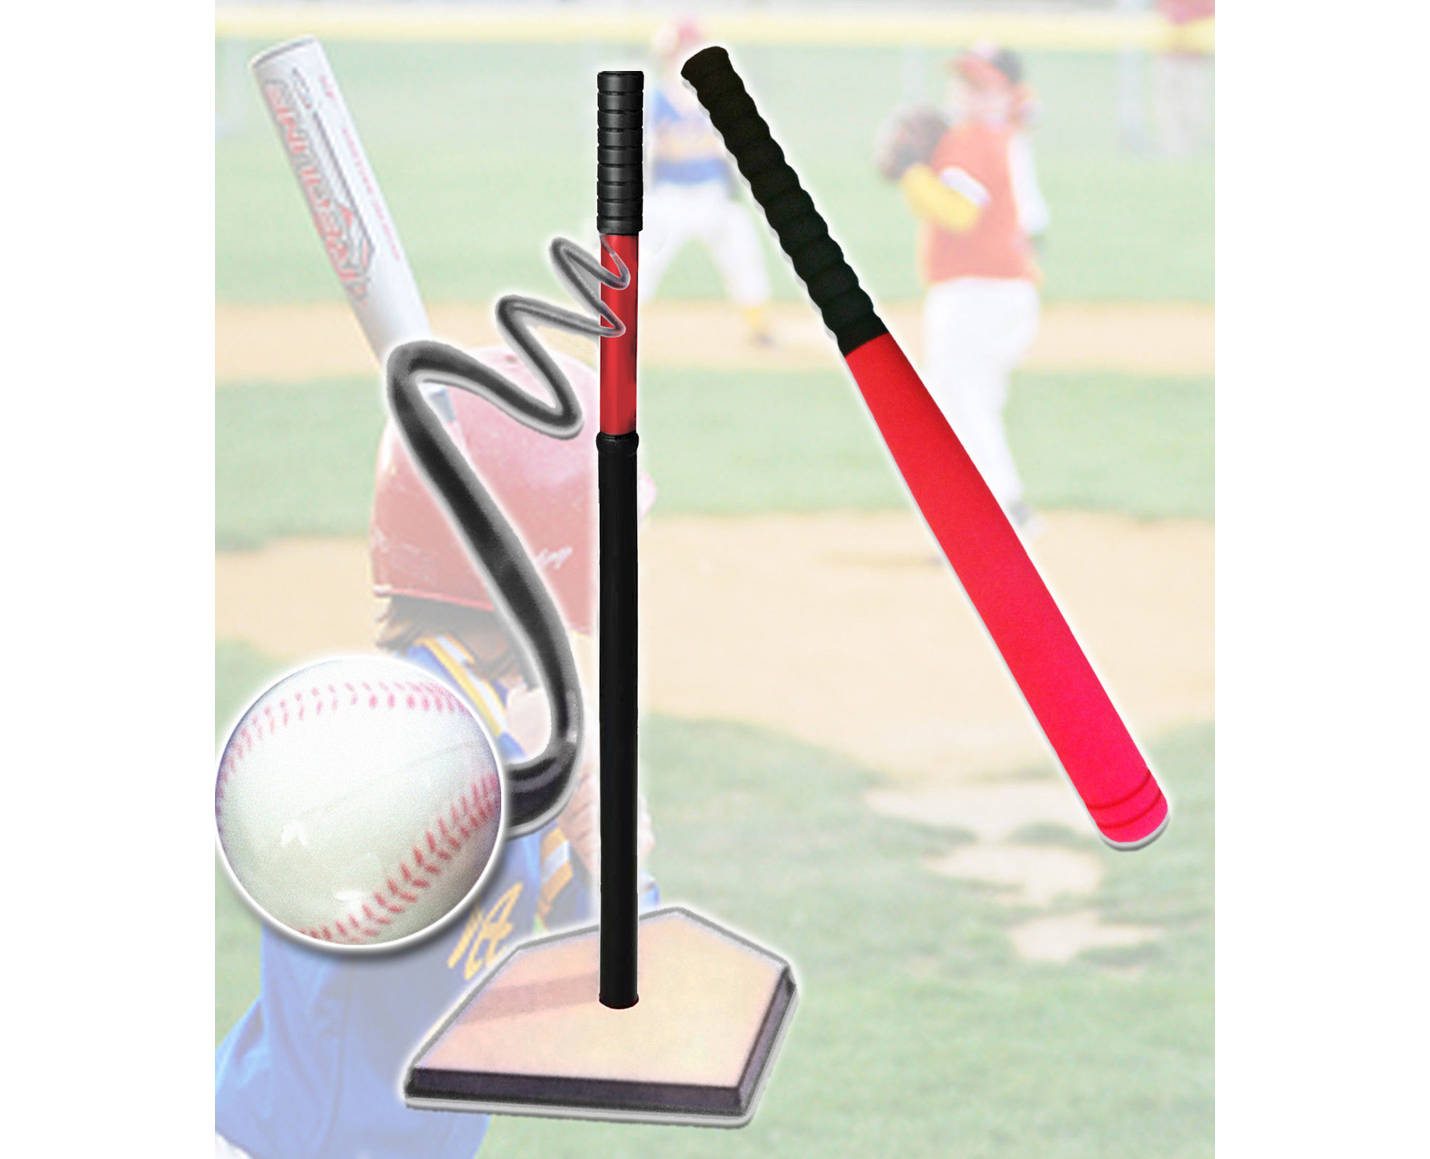 Deluxe Tee Ball Set Safe Baseball Training Kit